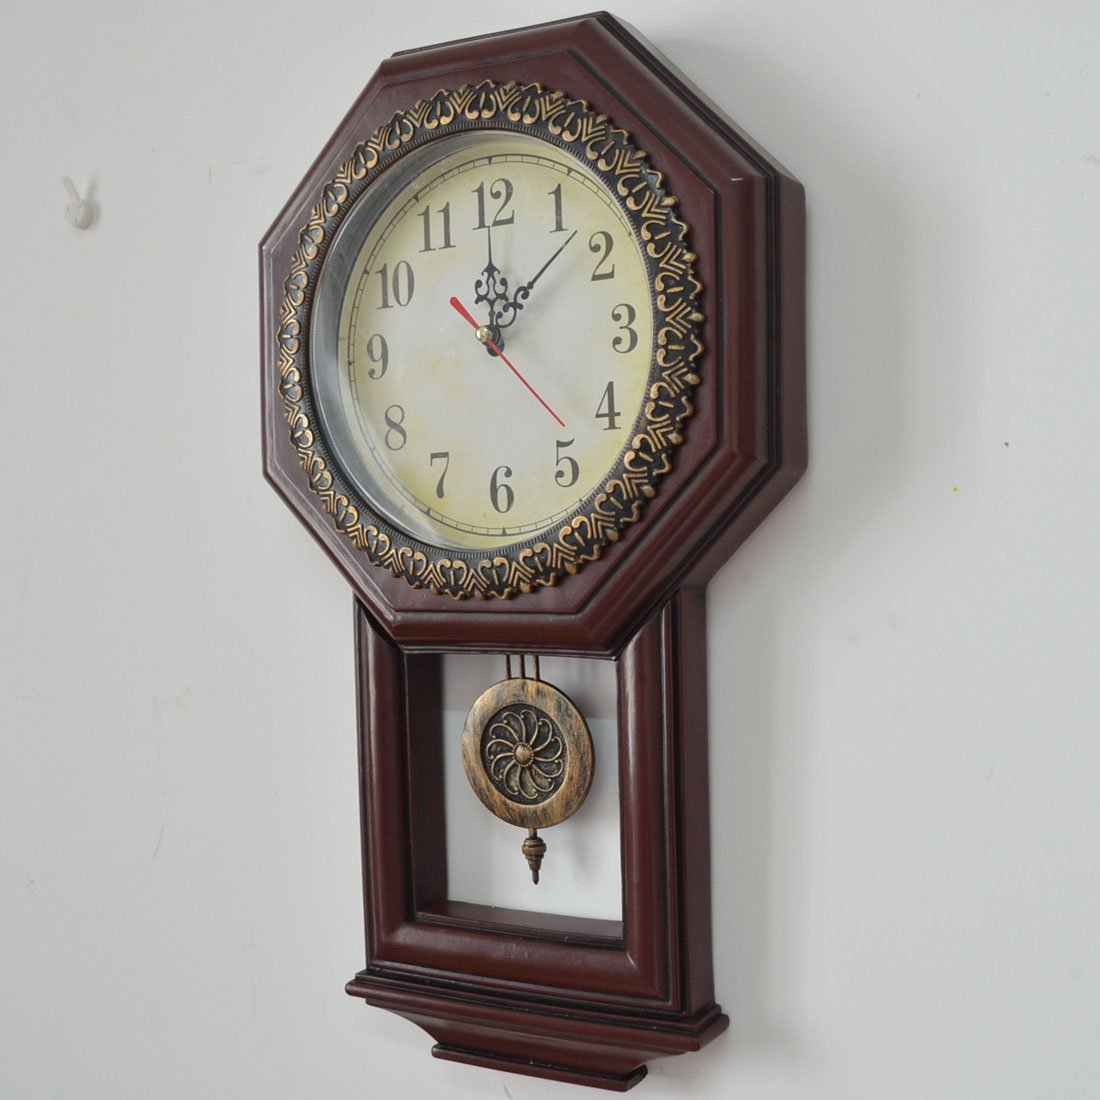 Giftgarden Housewarming Vintage Wall Clock Imitation Wood Color for Bedroom Decor 5